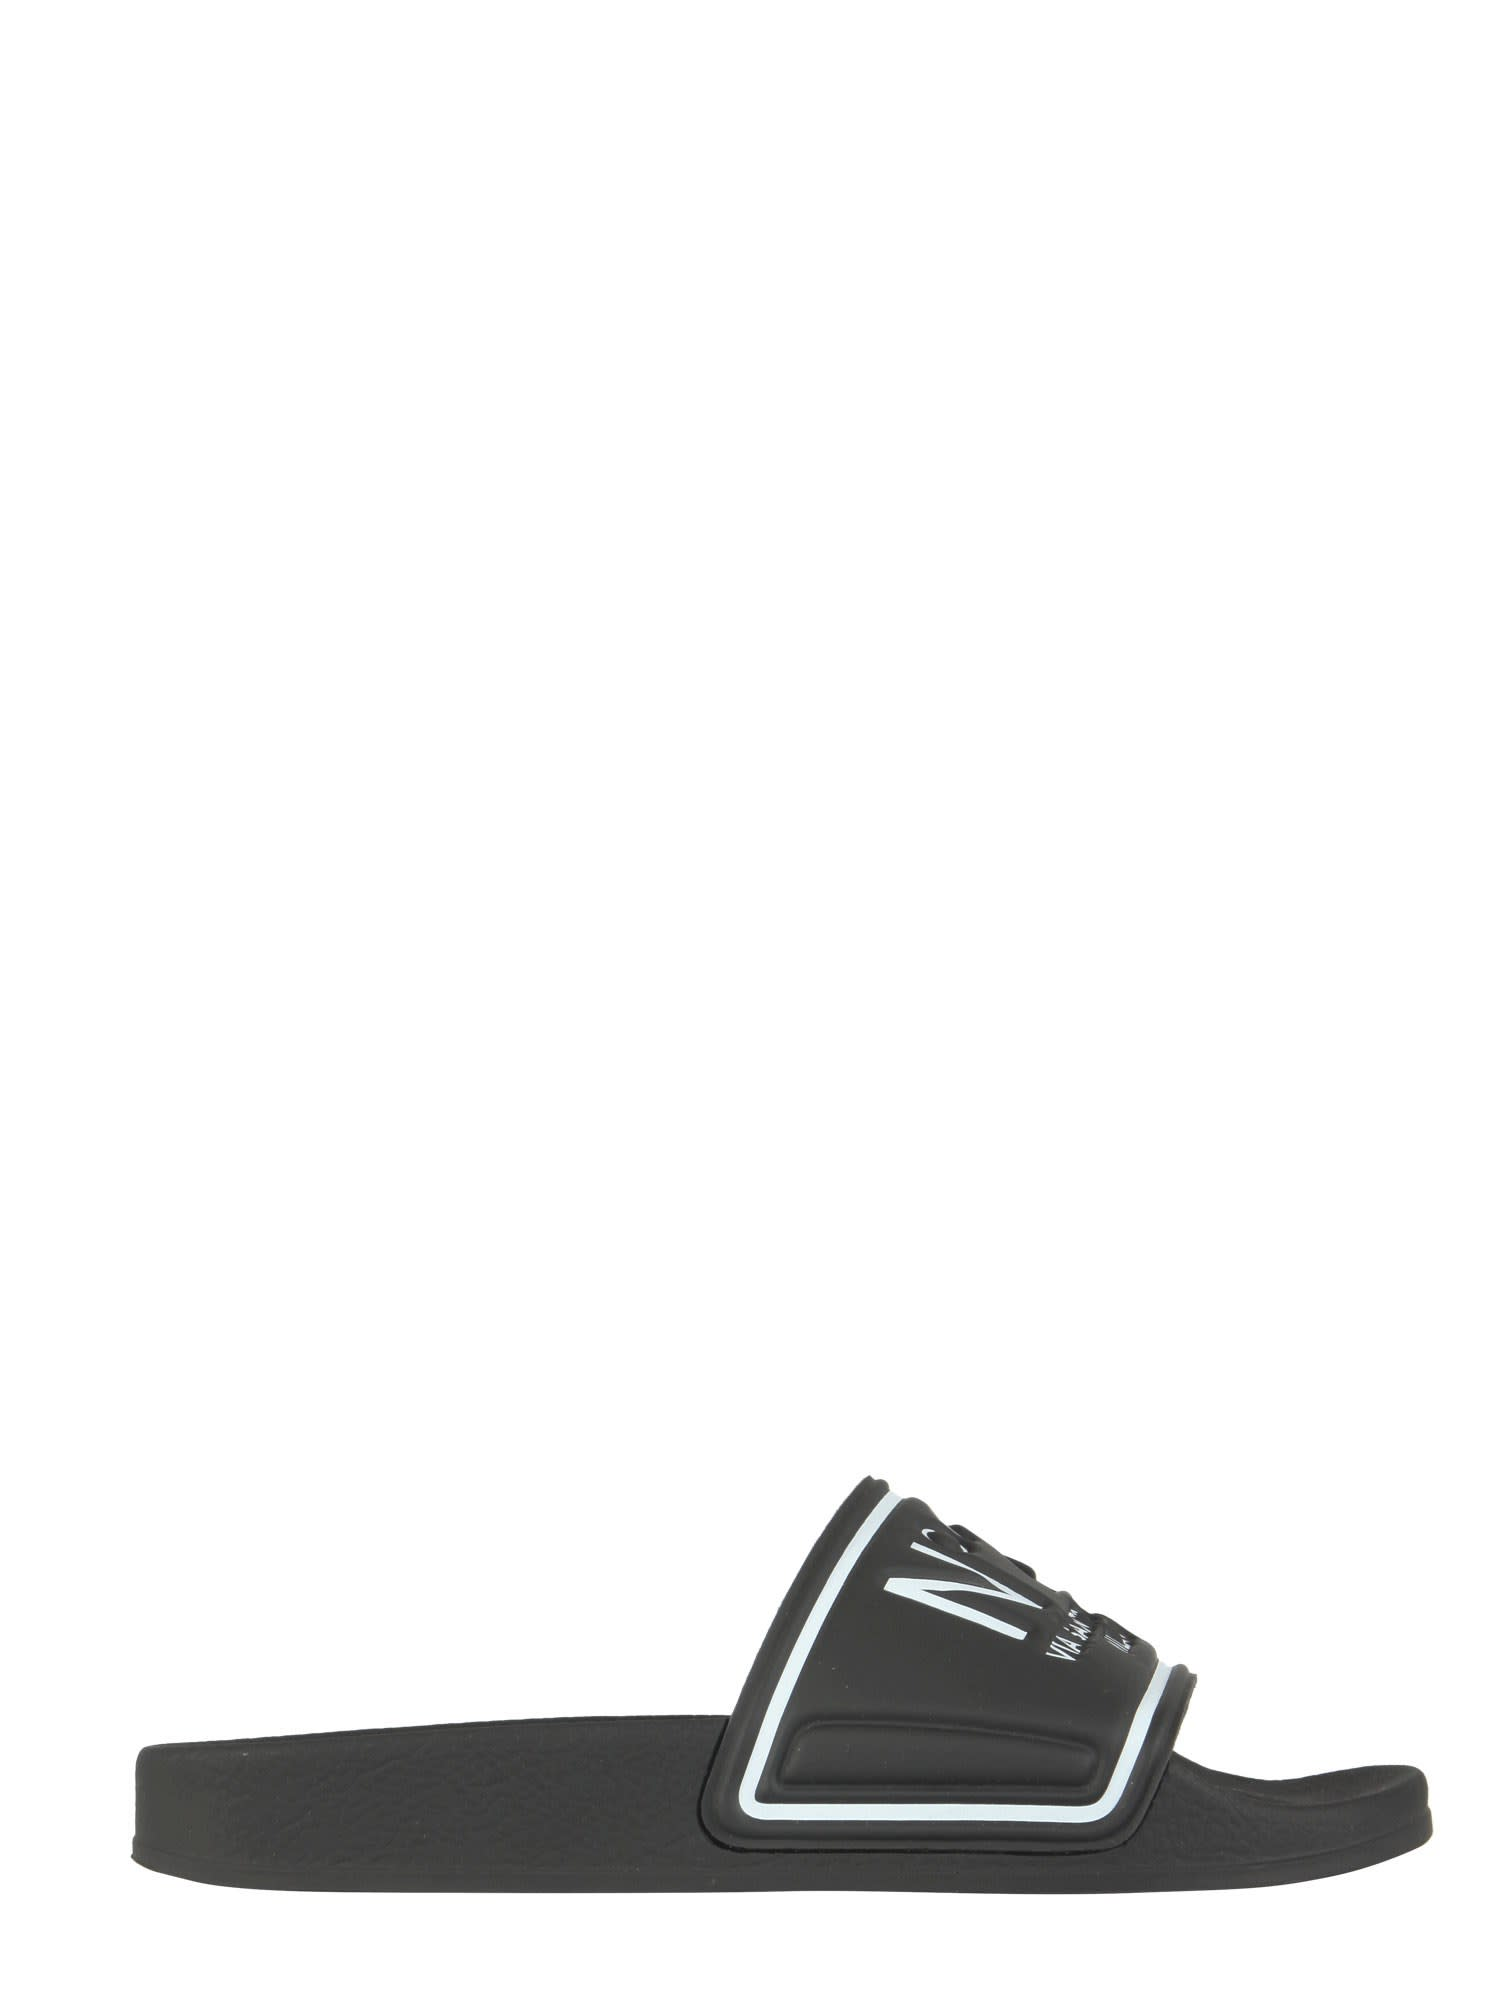 Buy N.21 Slide Sandals With Logo online, shop N.21 shoes with free shipping